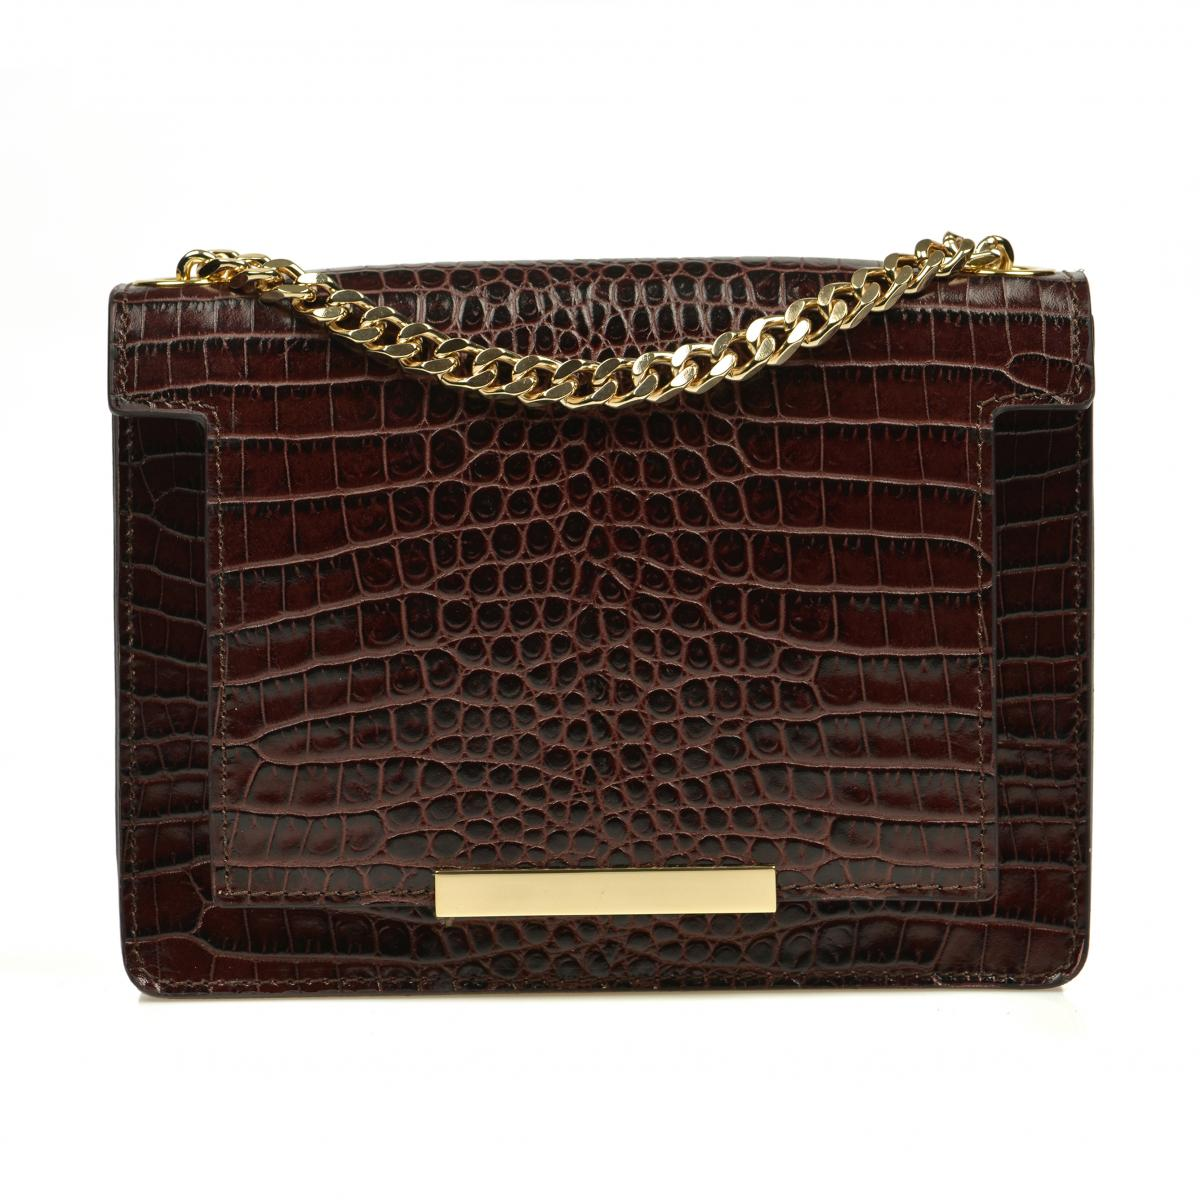 Geanta piele croco effect mini Lauren Dark Chocolate